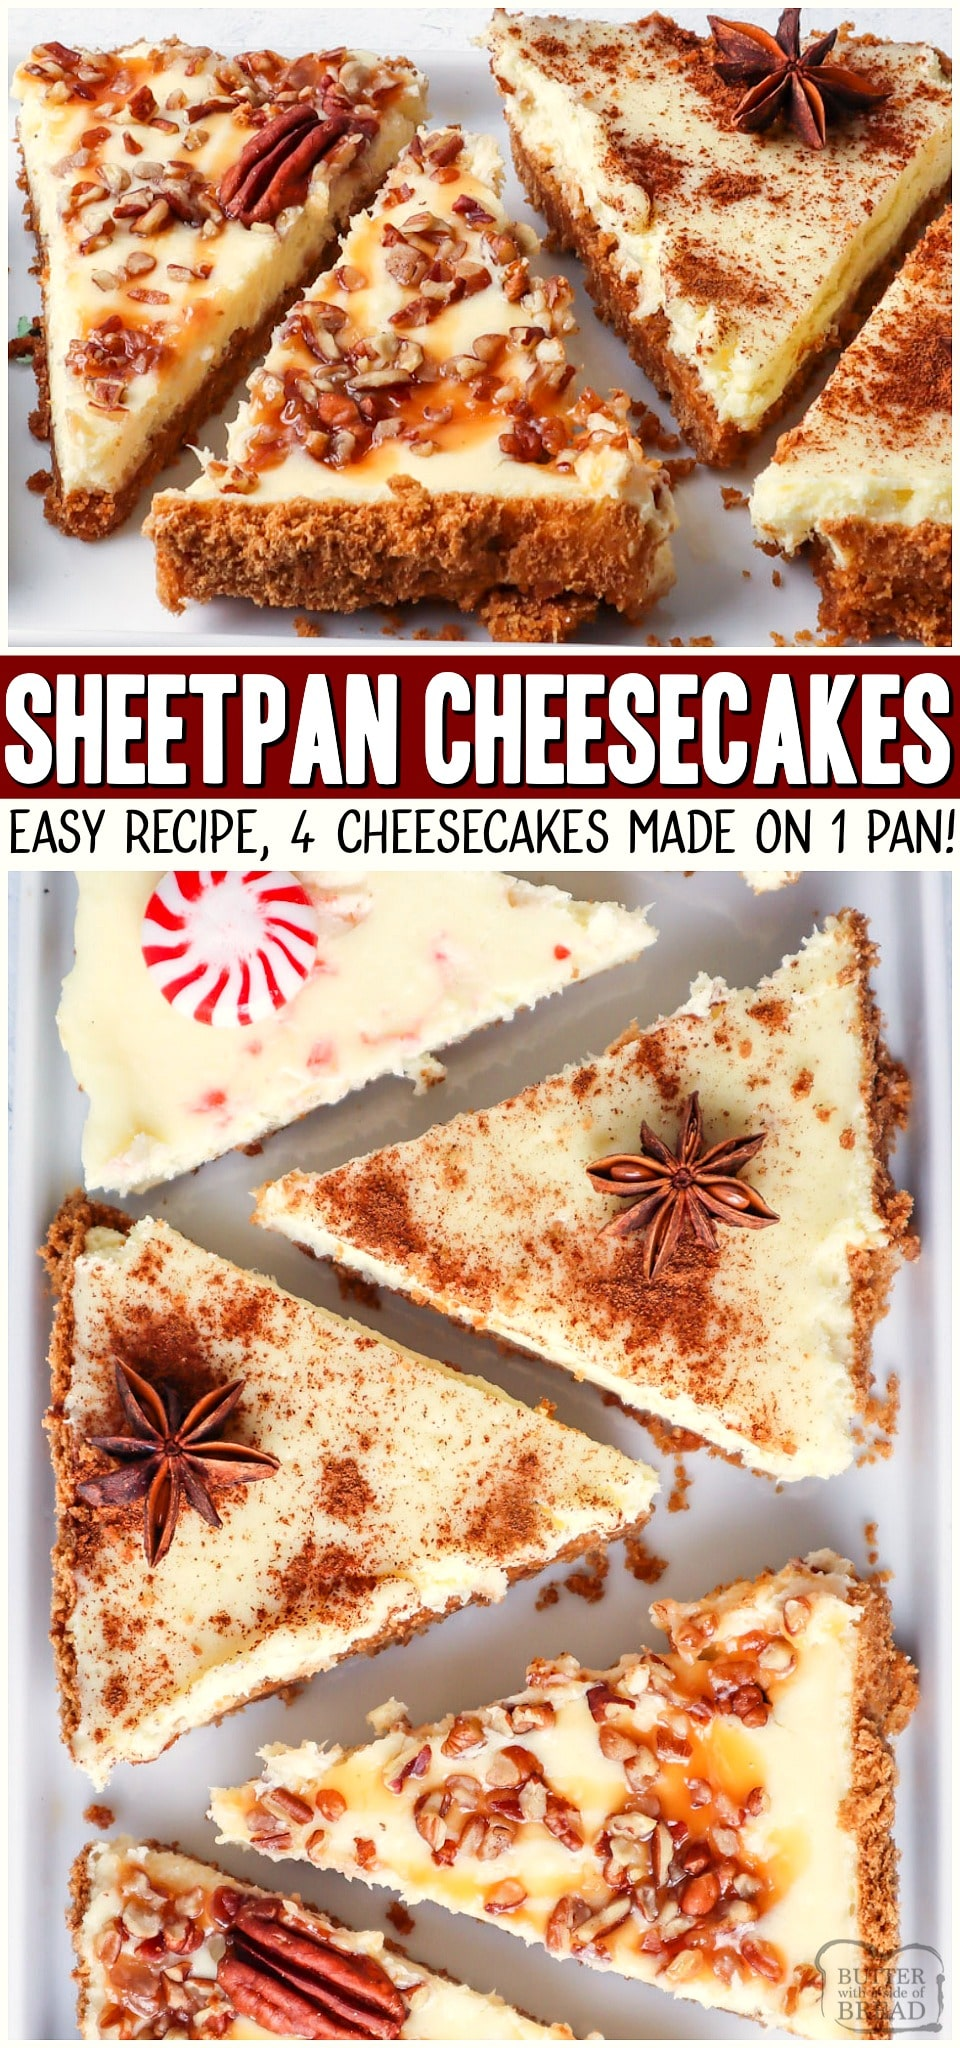 This easy sheet pan cheesecake recipe is one to remember. With just one simple graham cracker crust and a basic cheesecake batter we can create holiday cheesecake bars with 4 flavor options to choose from! 